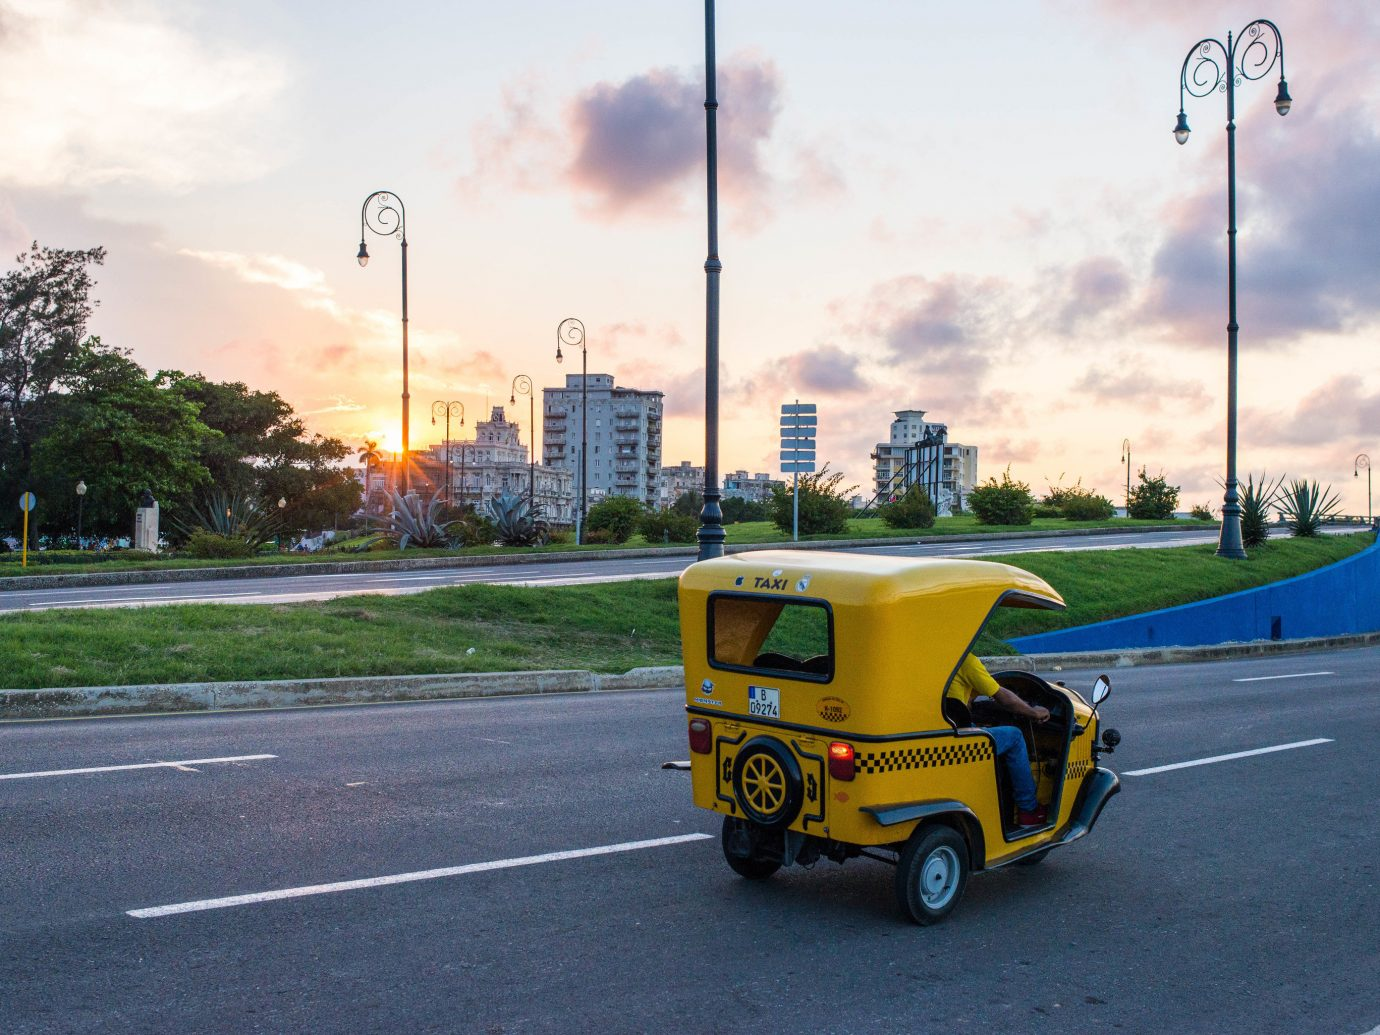 Travel Tips sky road outdoor yellow car transport street vehicle infrastructure driving traffic scooter highway